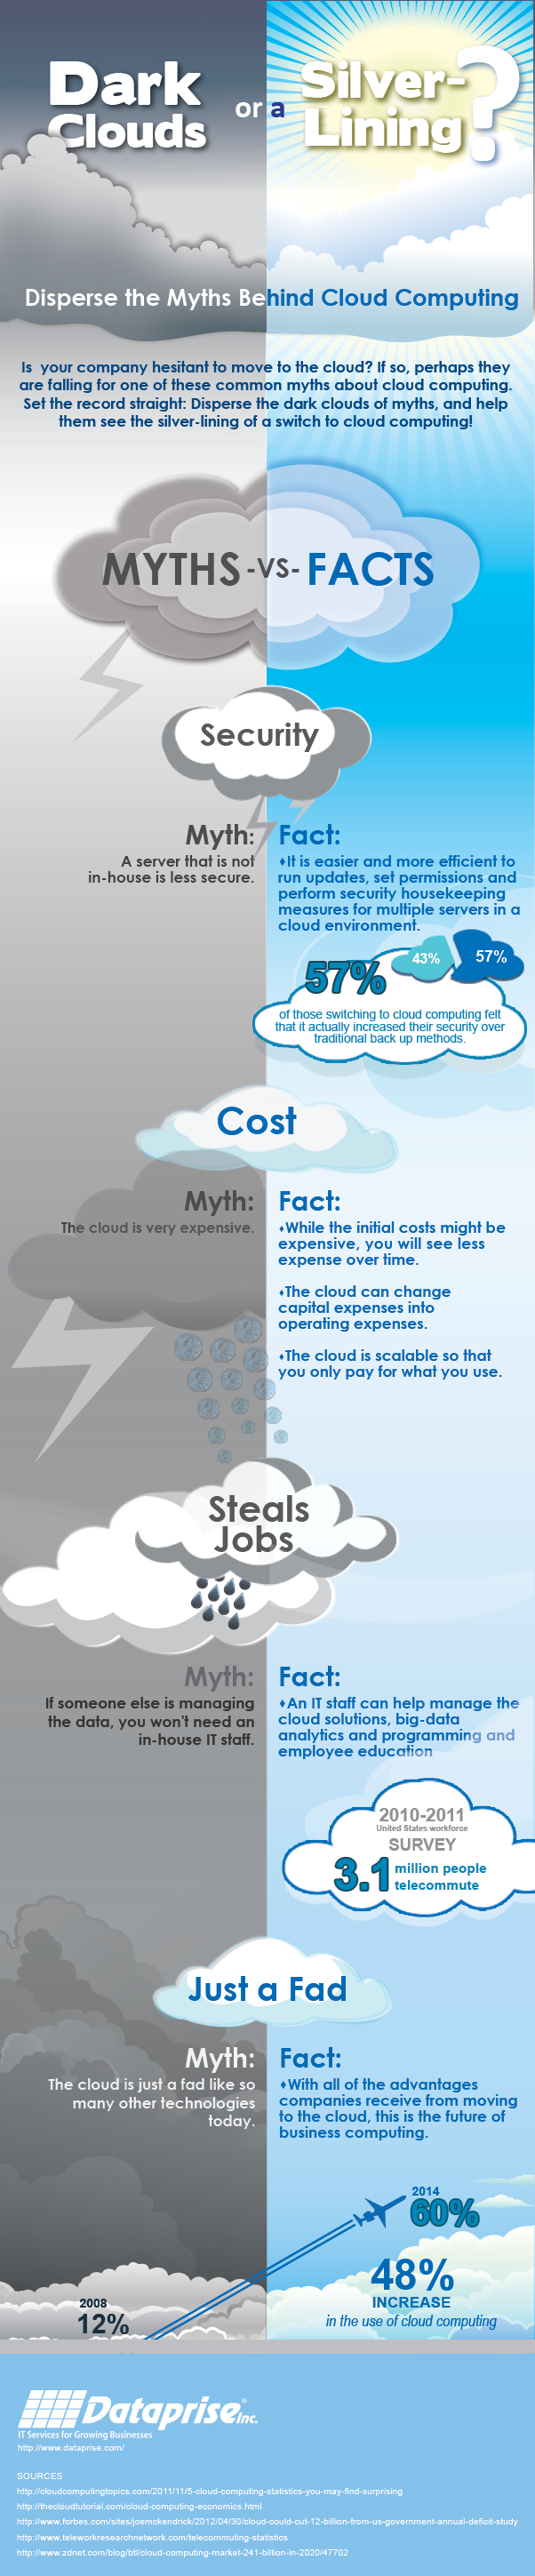 4 Myths about Cloud Computing and Why They're Wrong - Image 1